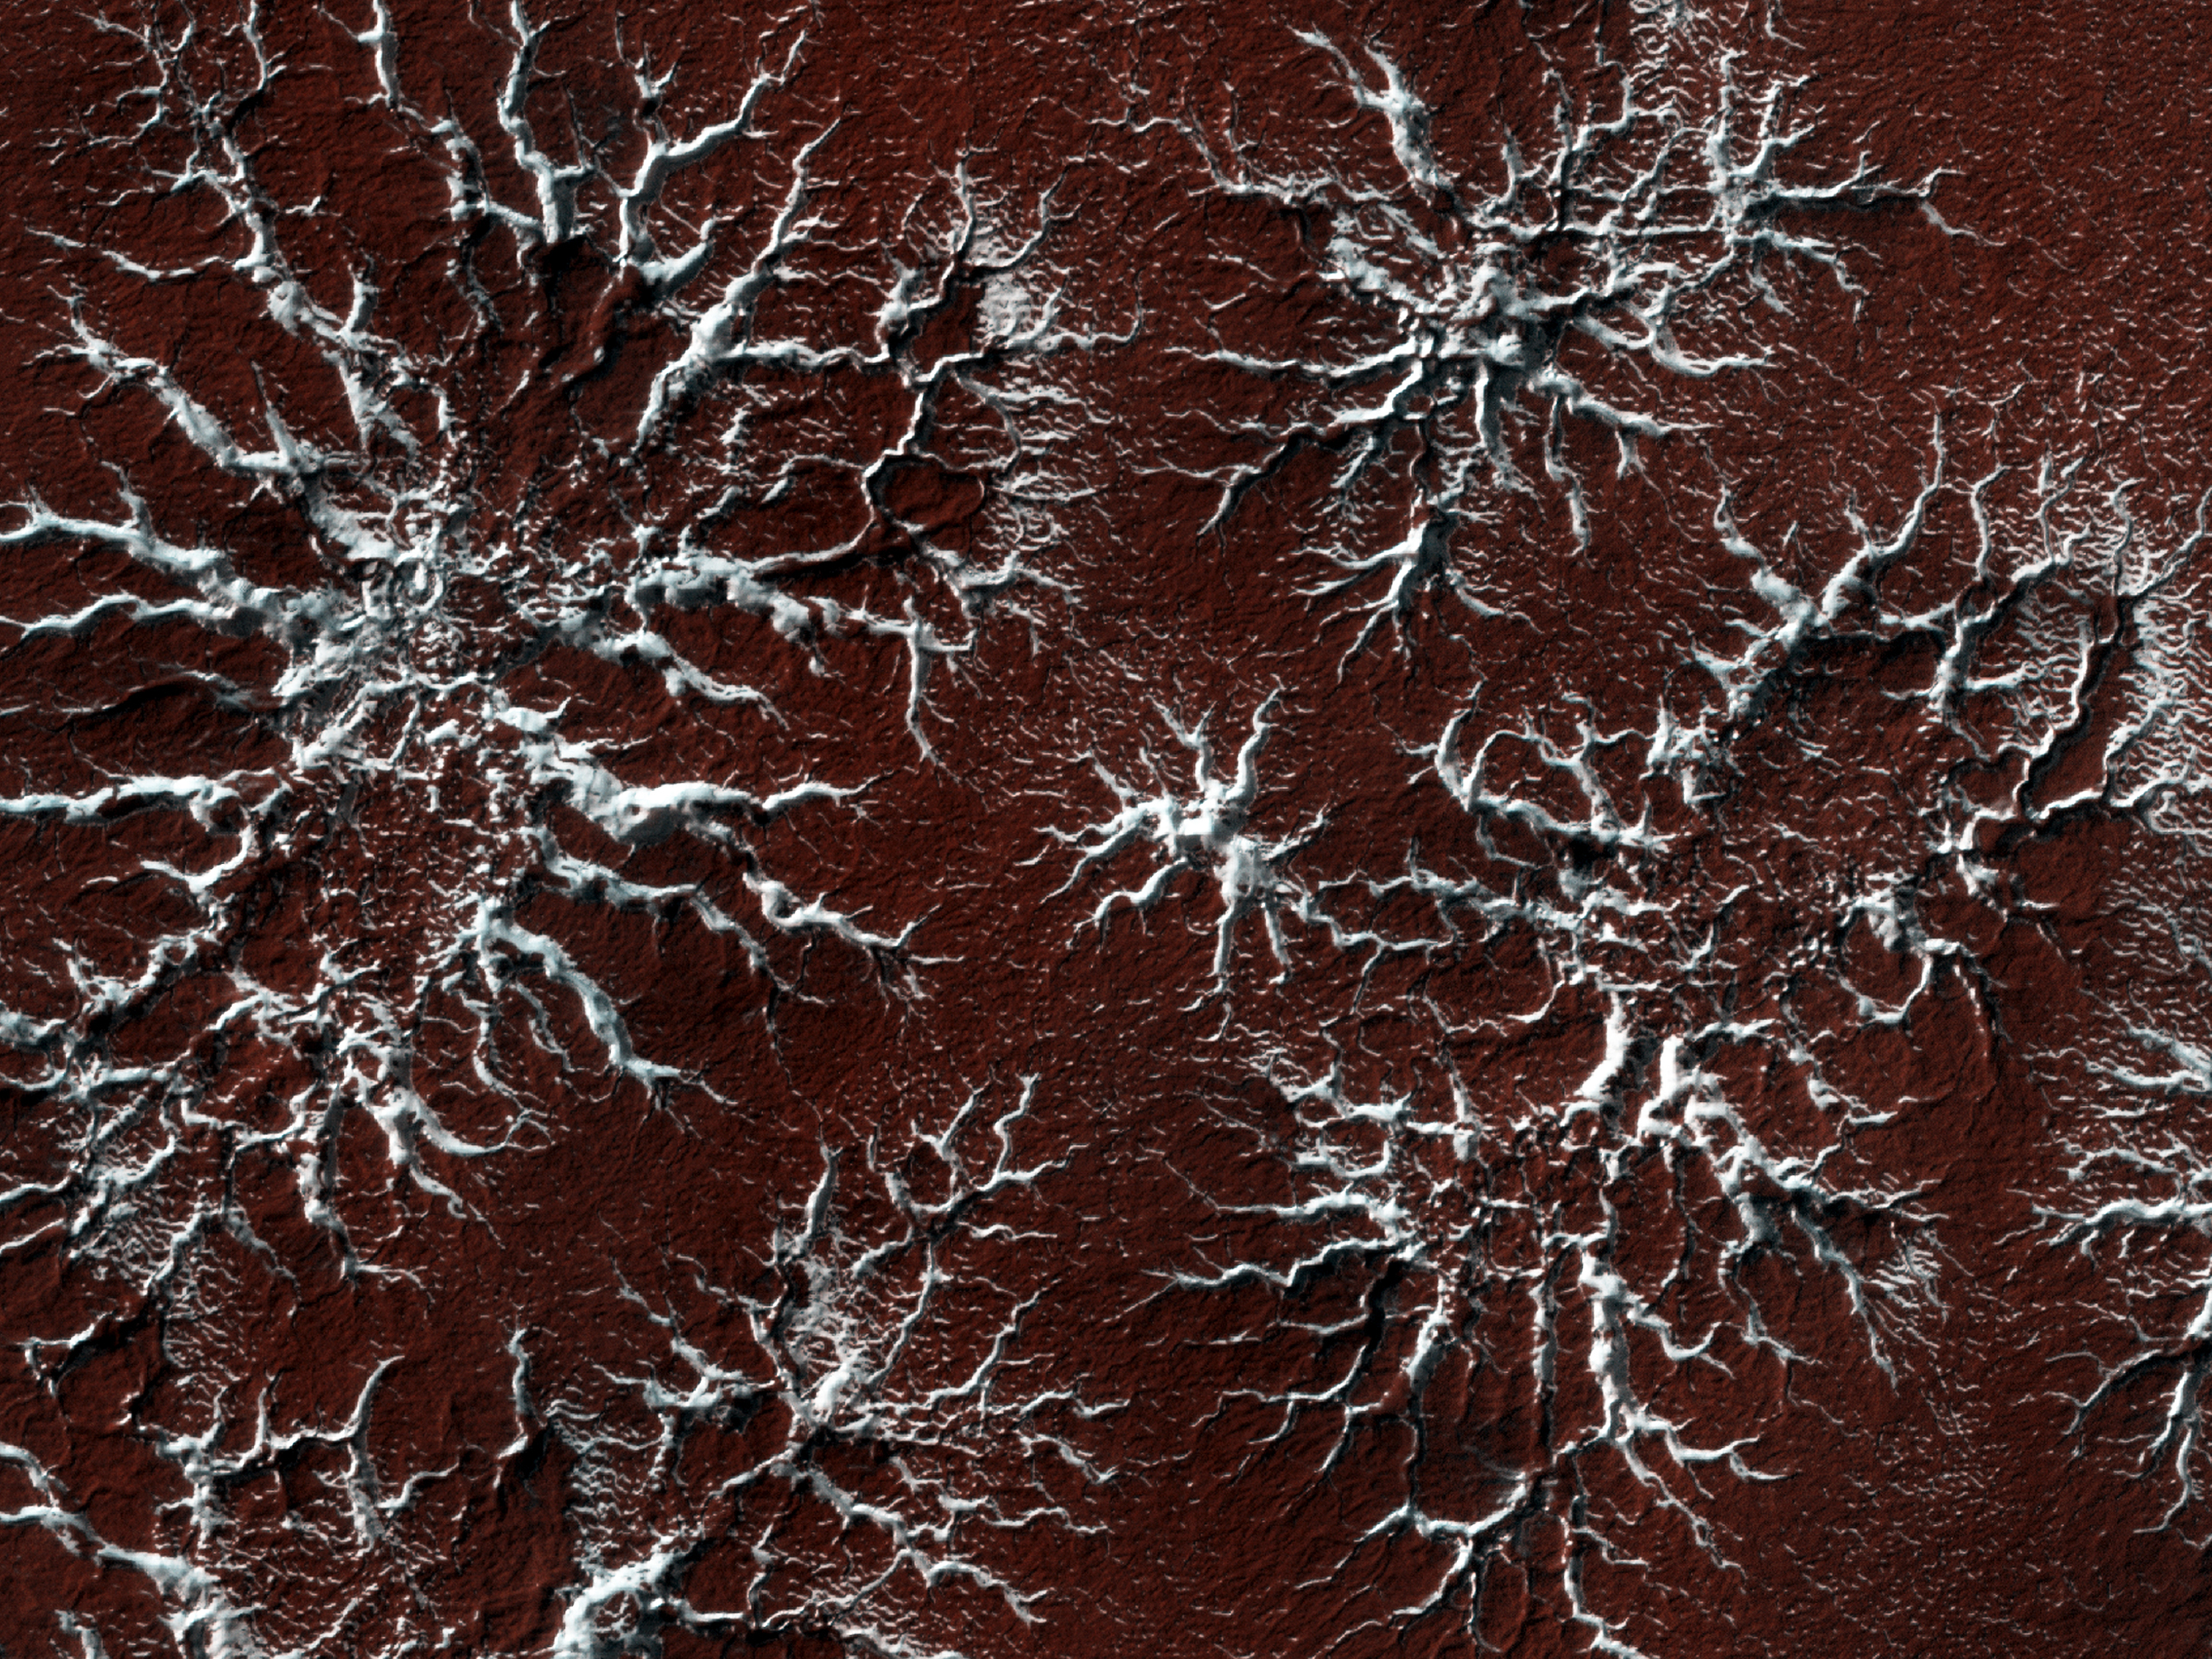 Spidery ice formations on the surface of Mars as seen from orbit.